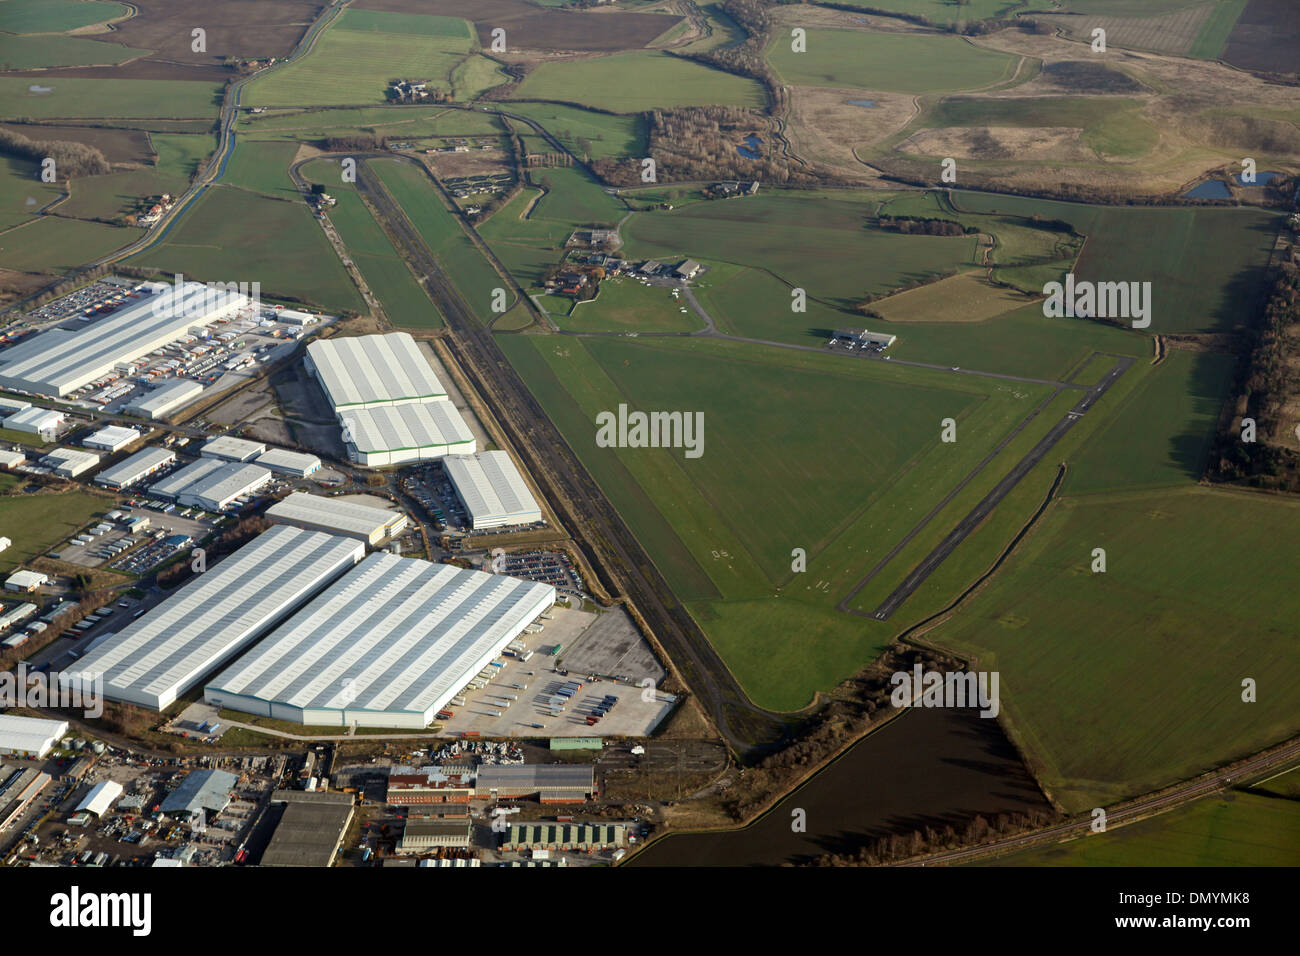 aerial view of Sherburn Airfield in Yorkshire - Stock Image